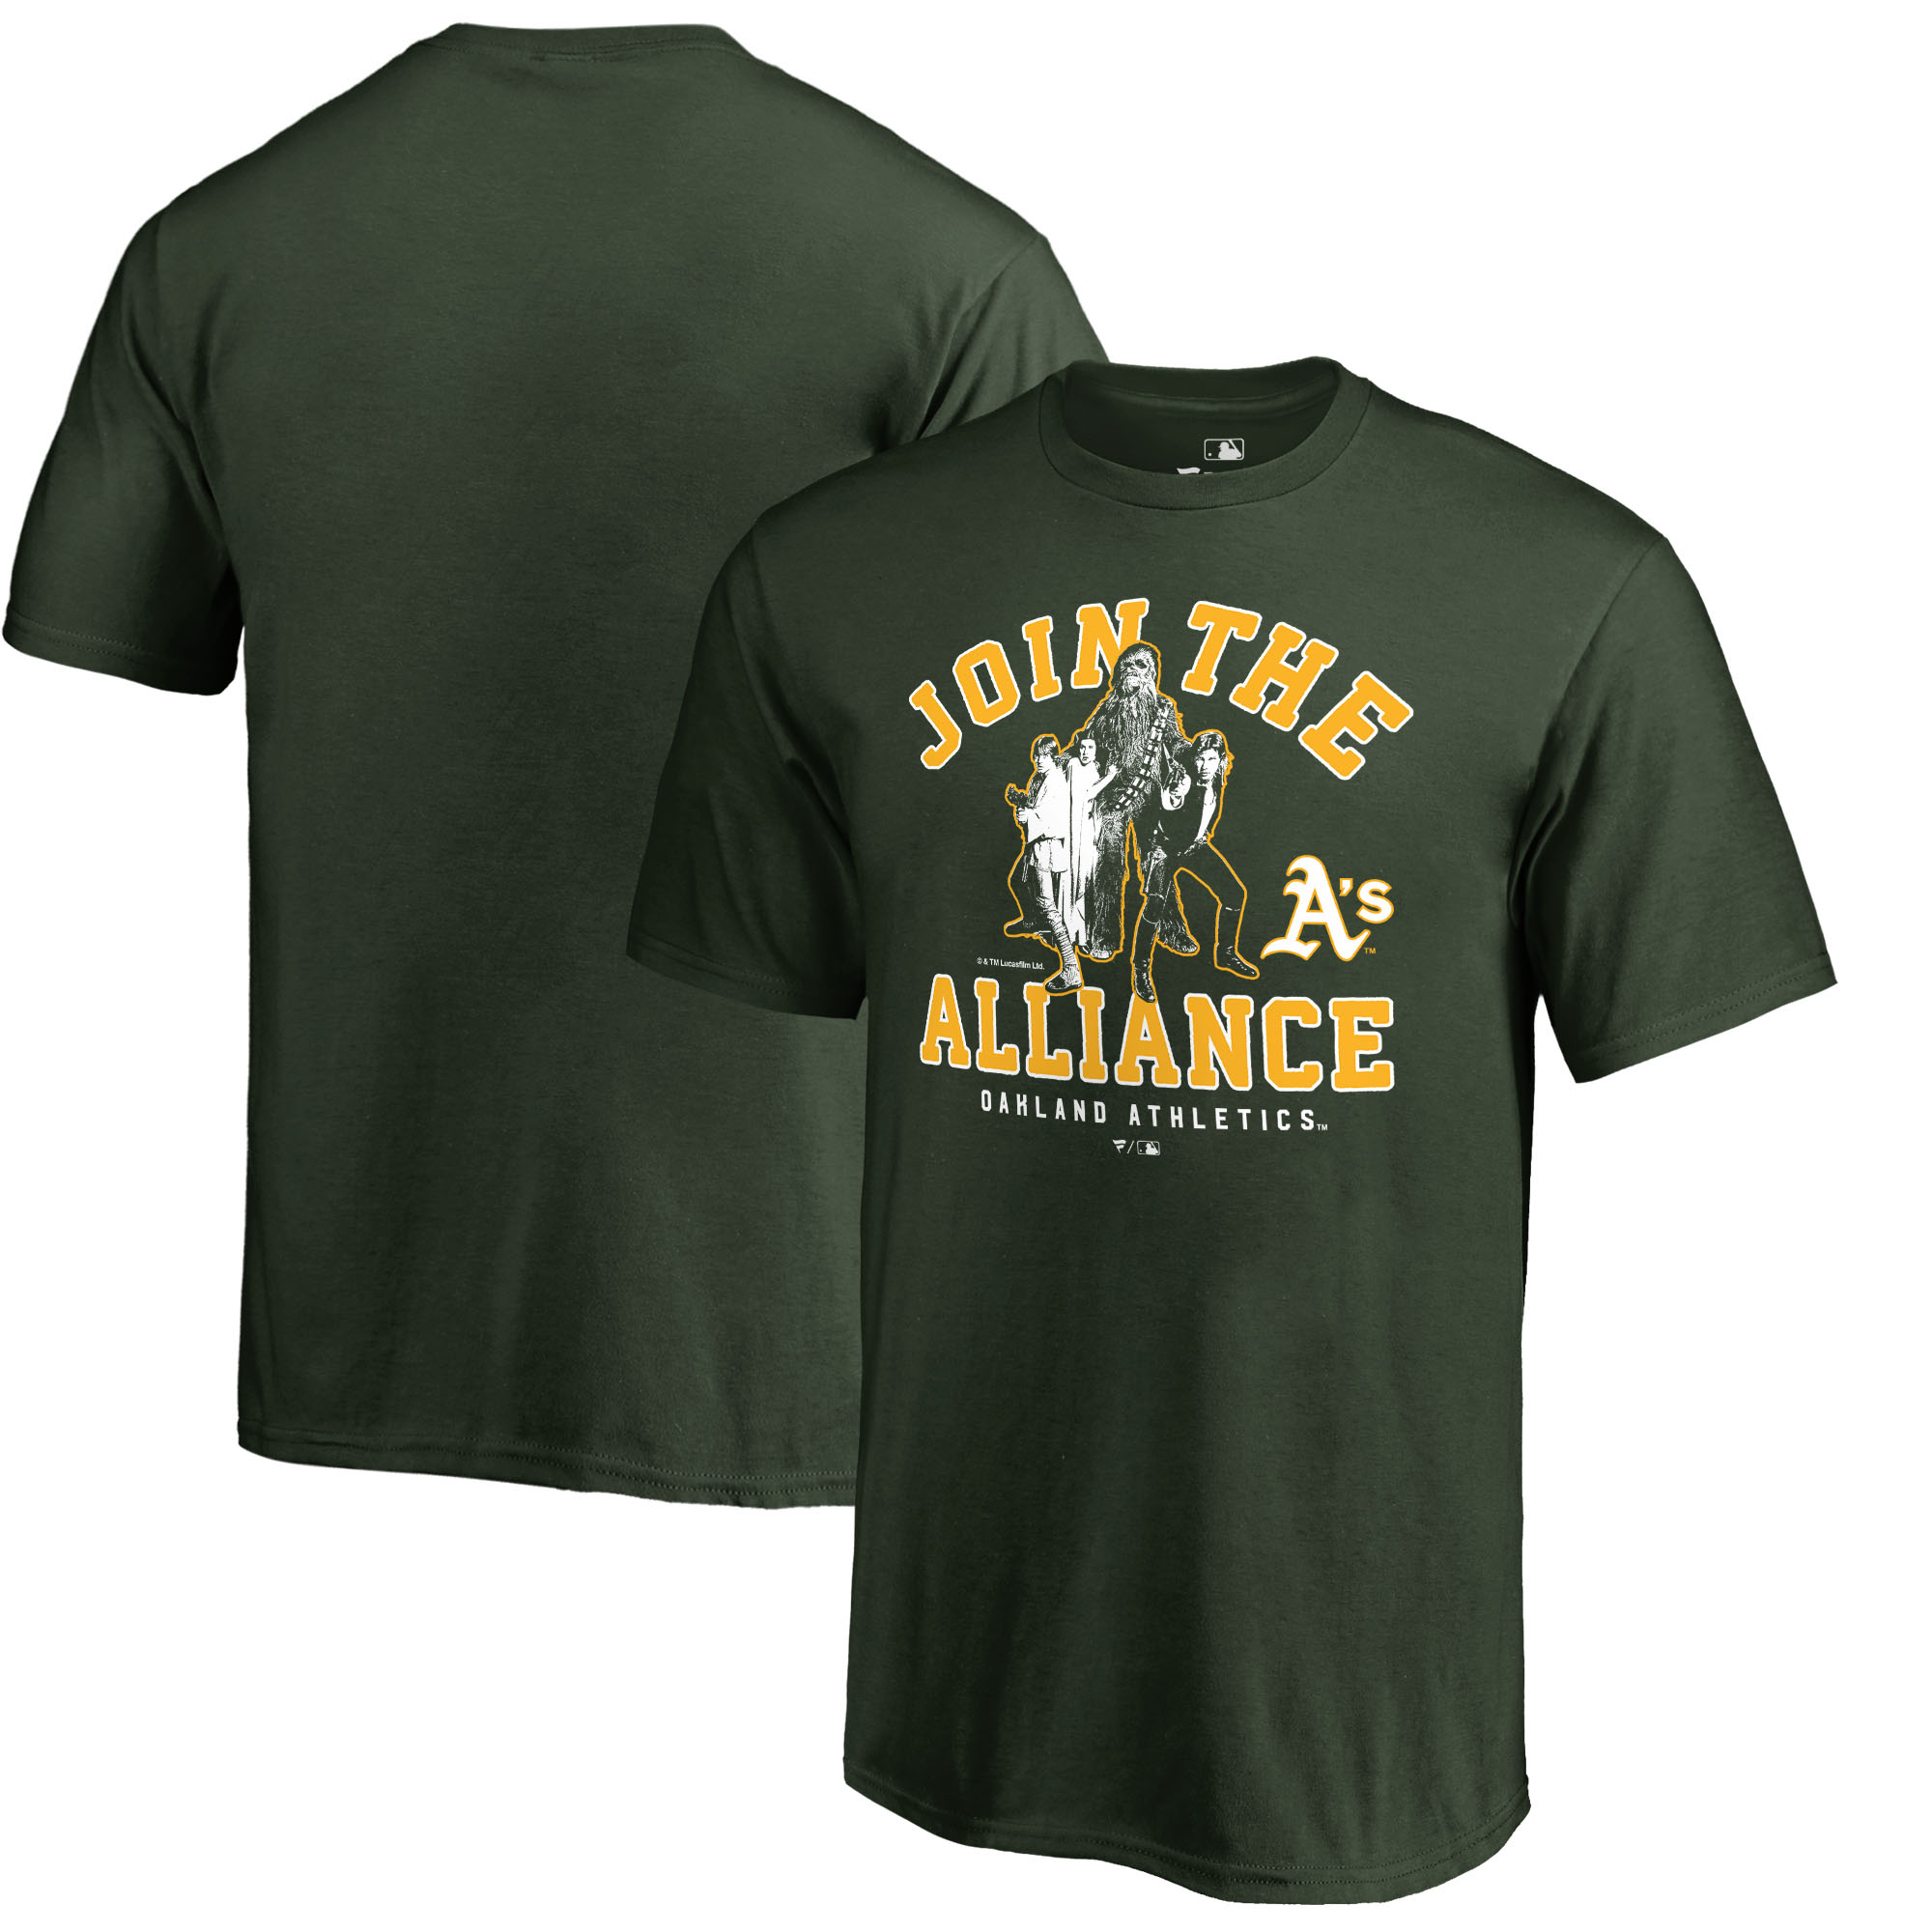 Oakland Athletics Fanatics Branded Youth MLB Star Wars Join The Alliance T-Shirt - Green